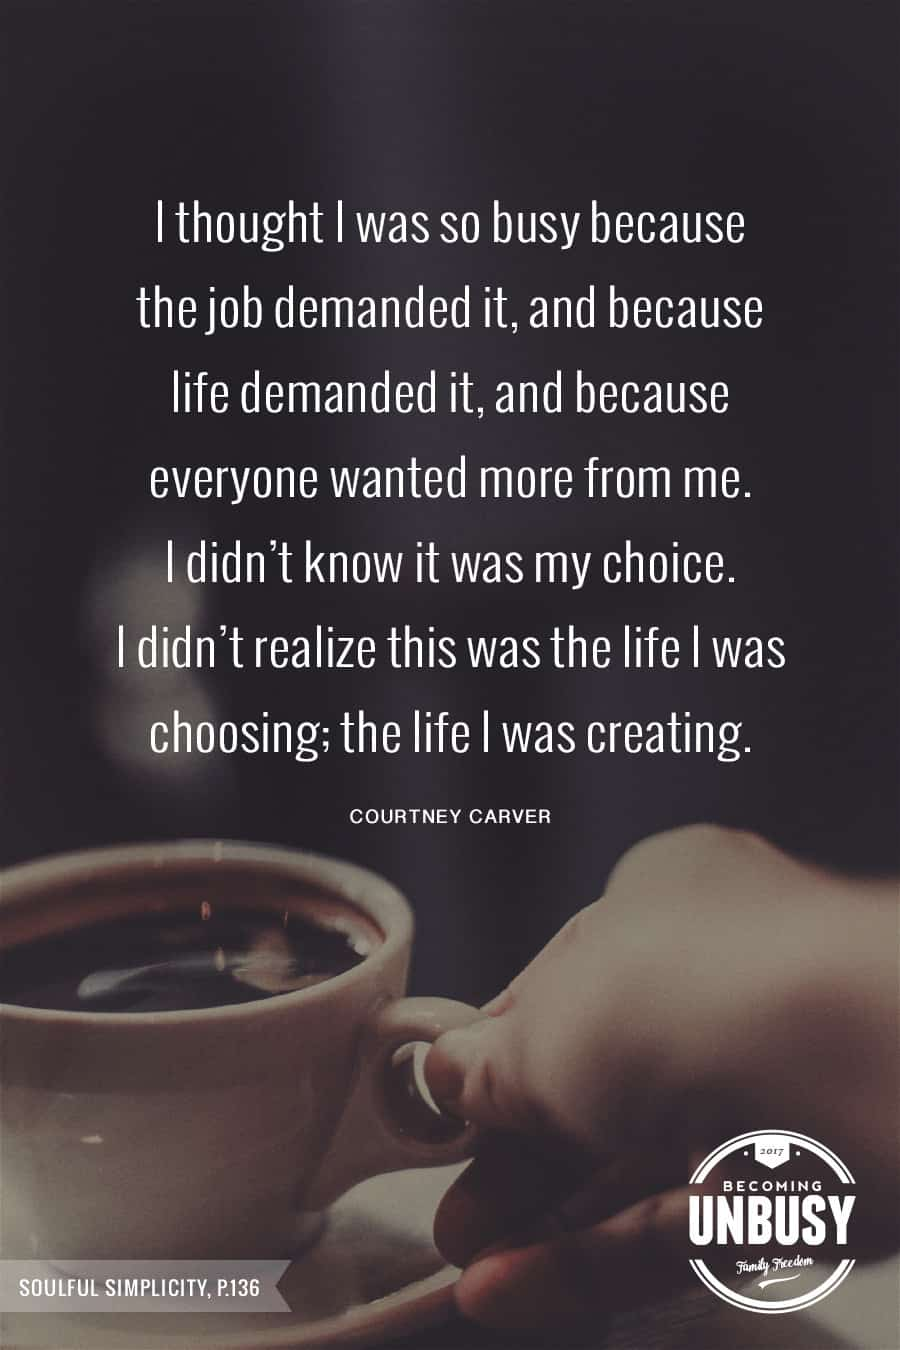 10 Good Morning Quotes - I thought I was so busy because the job demanded it, and because everyone wanted more from me. I didn't know it was my choice. I didn't realize this was the life I was choosing; the life I was creating. #courtneycarver #lessismore #lifequotes #quotes #goodmorningquotes *Start the day off right with these morning inspirational quotes. Love this good morning motivation!